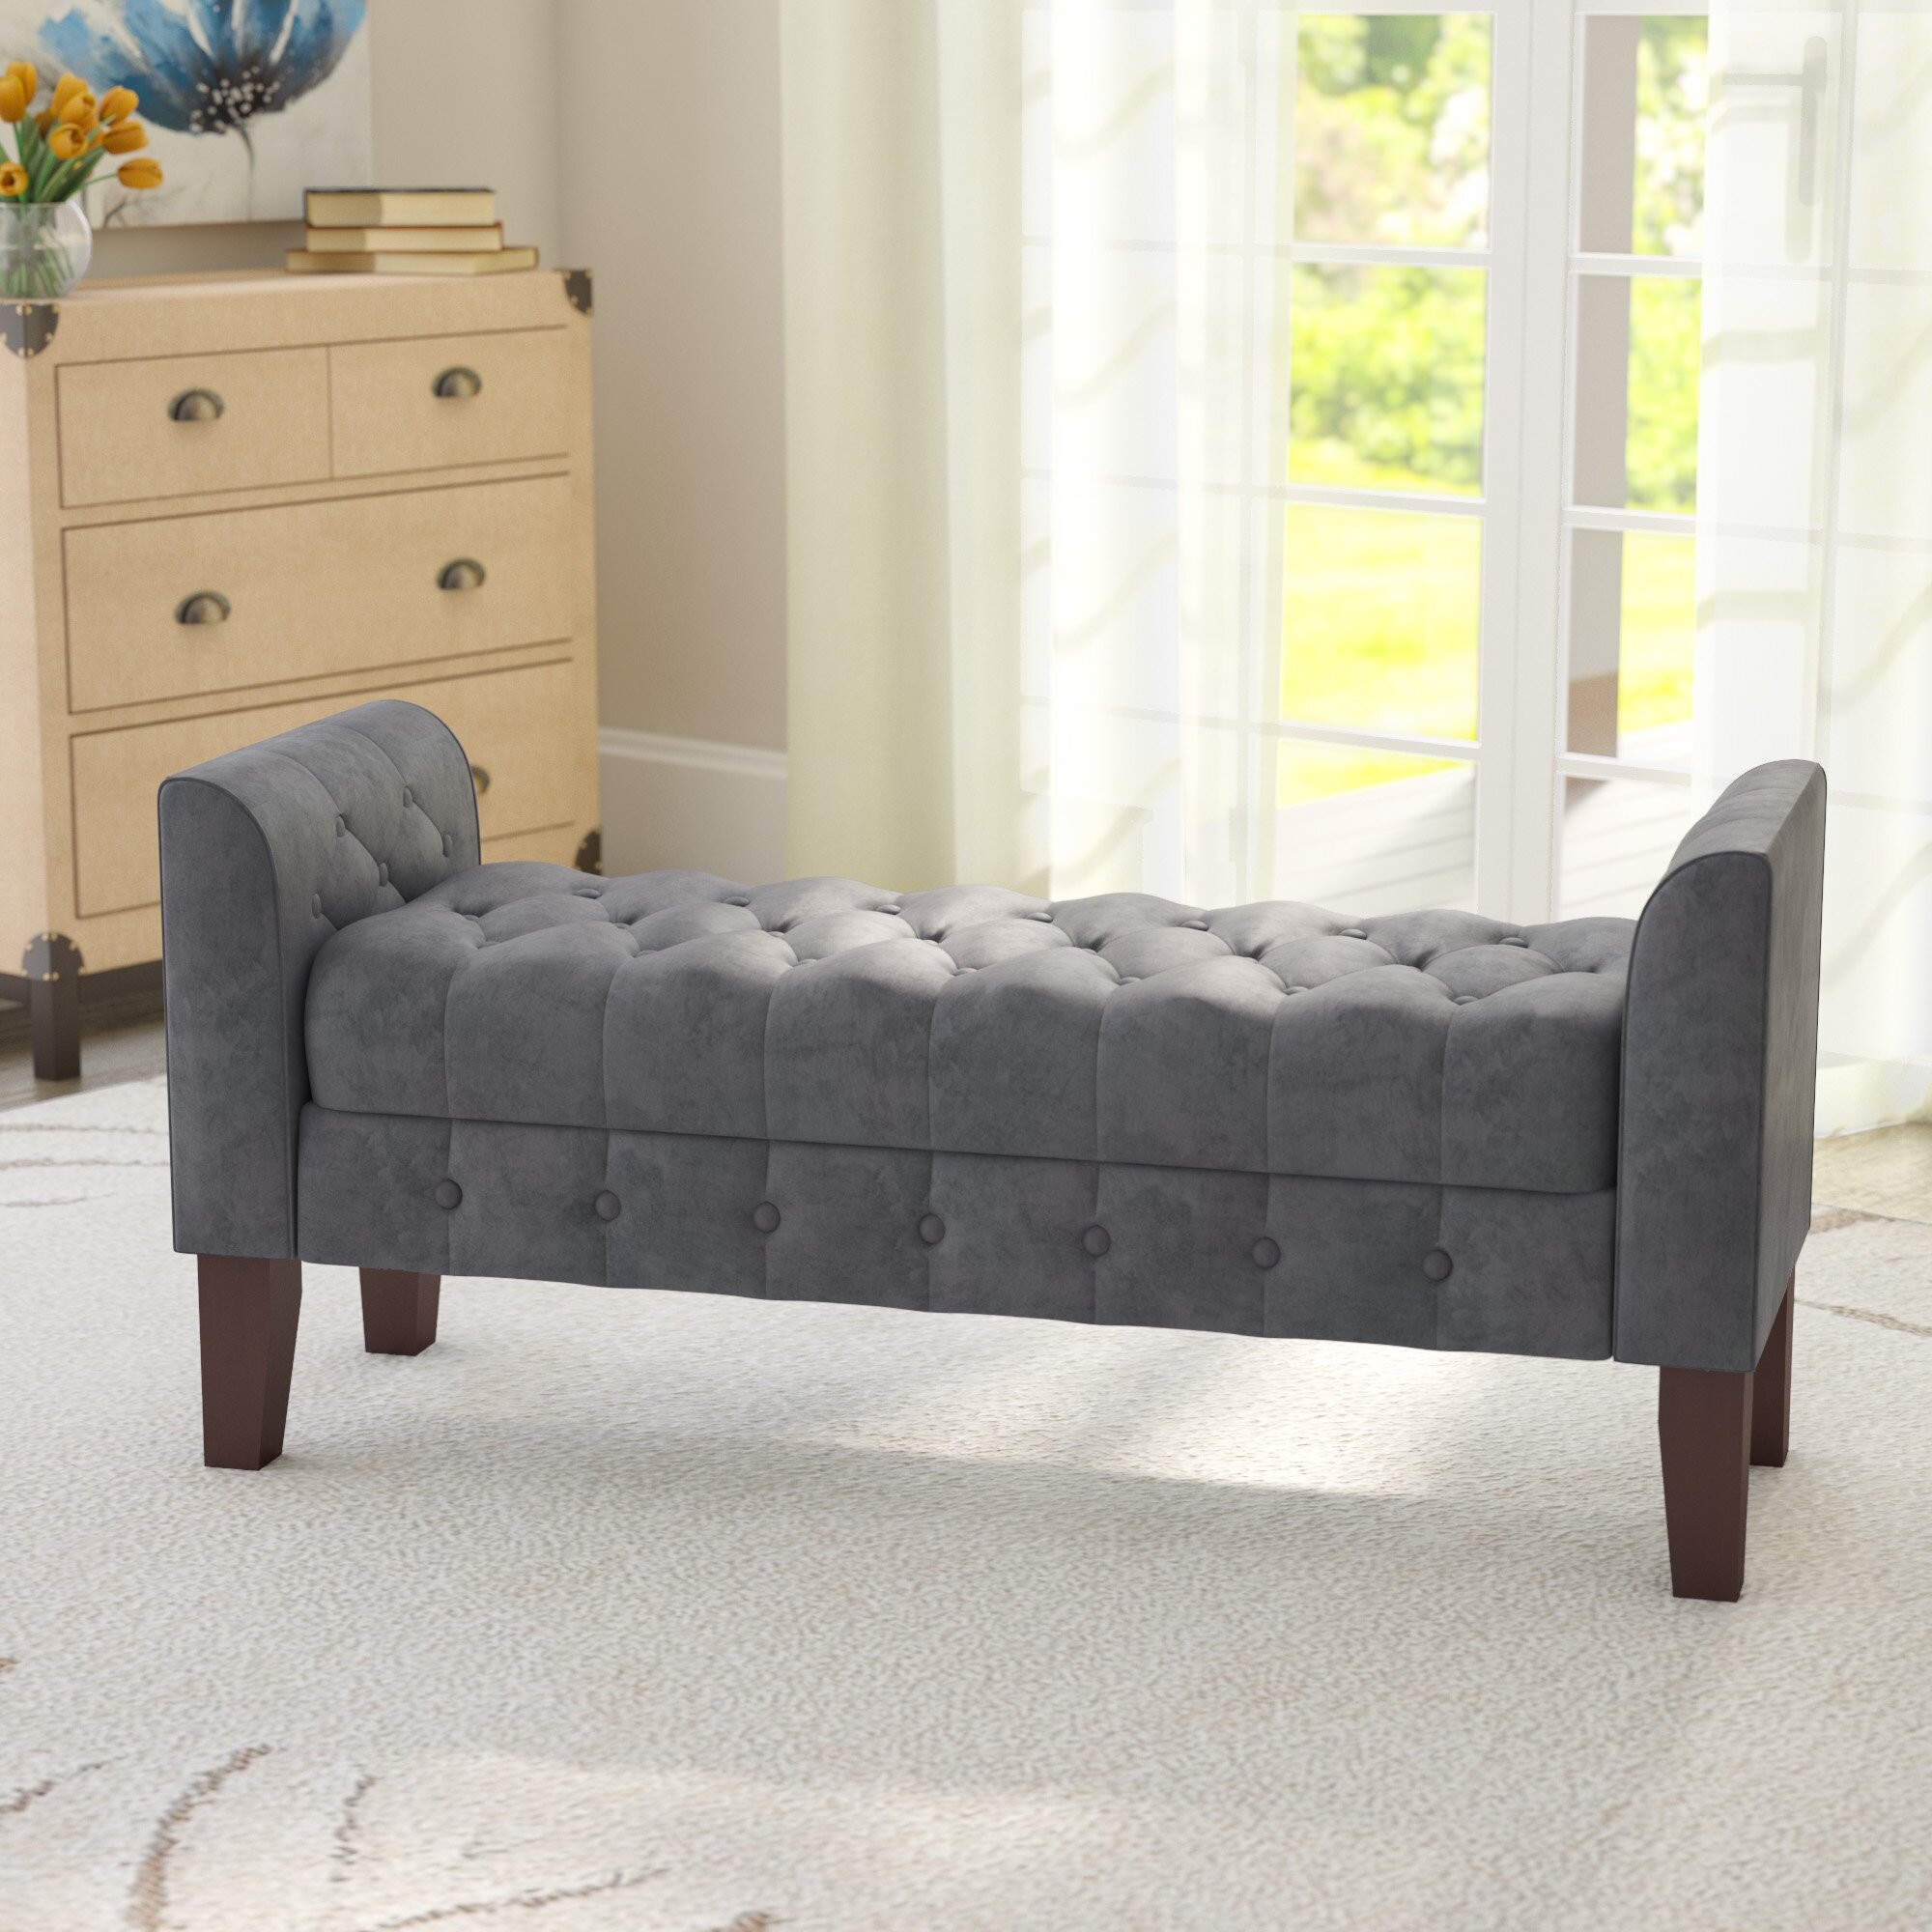 Adecotrading Storage Bedroom Bench Reviews: Three Posts Aimee Upholstered Storage Bedroom Bench